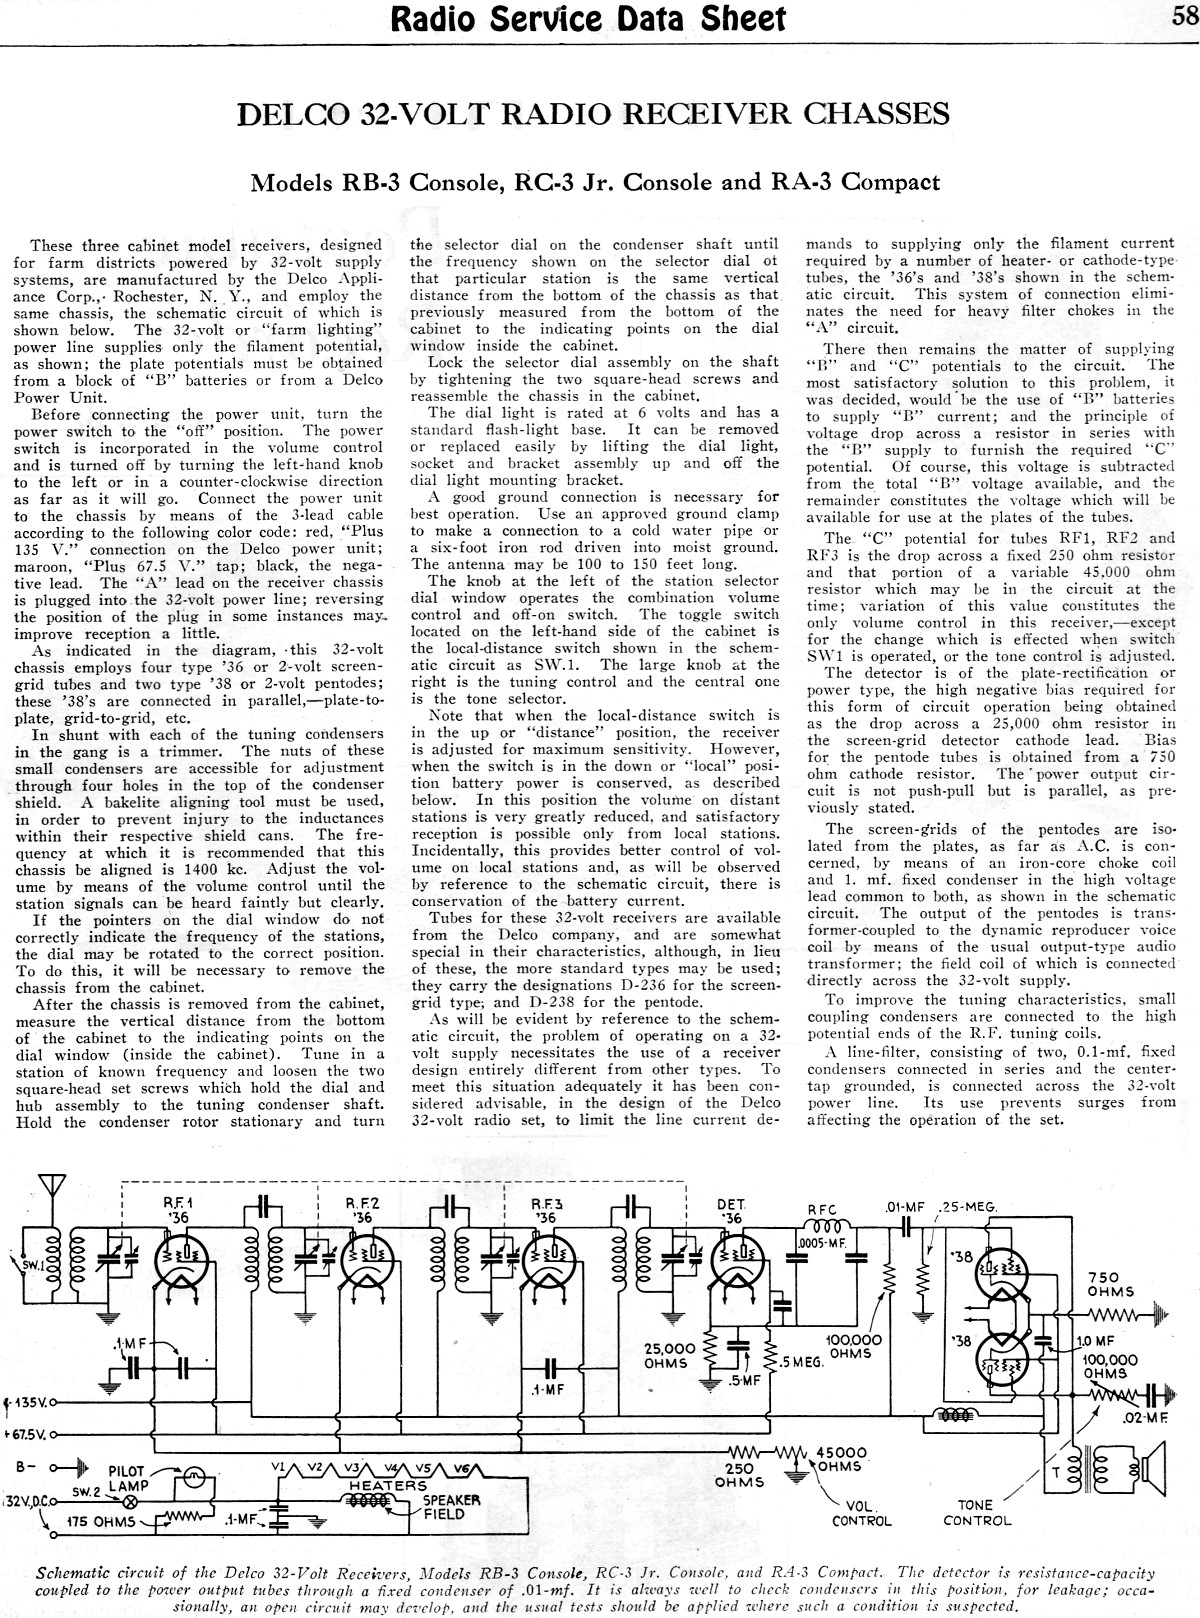 Vintage Delco Radio Schematics Wiring Diagram Will Be A Thing Acdelco 32 Volt Receiver Chasses Service Data Gm Harness Delphi